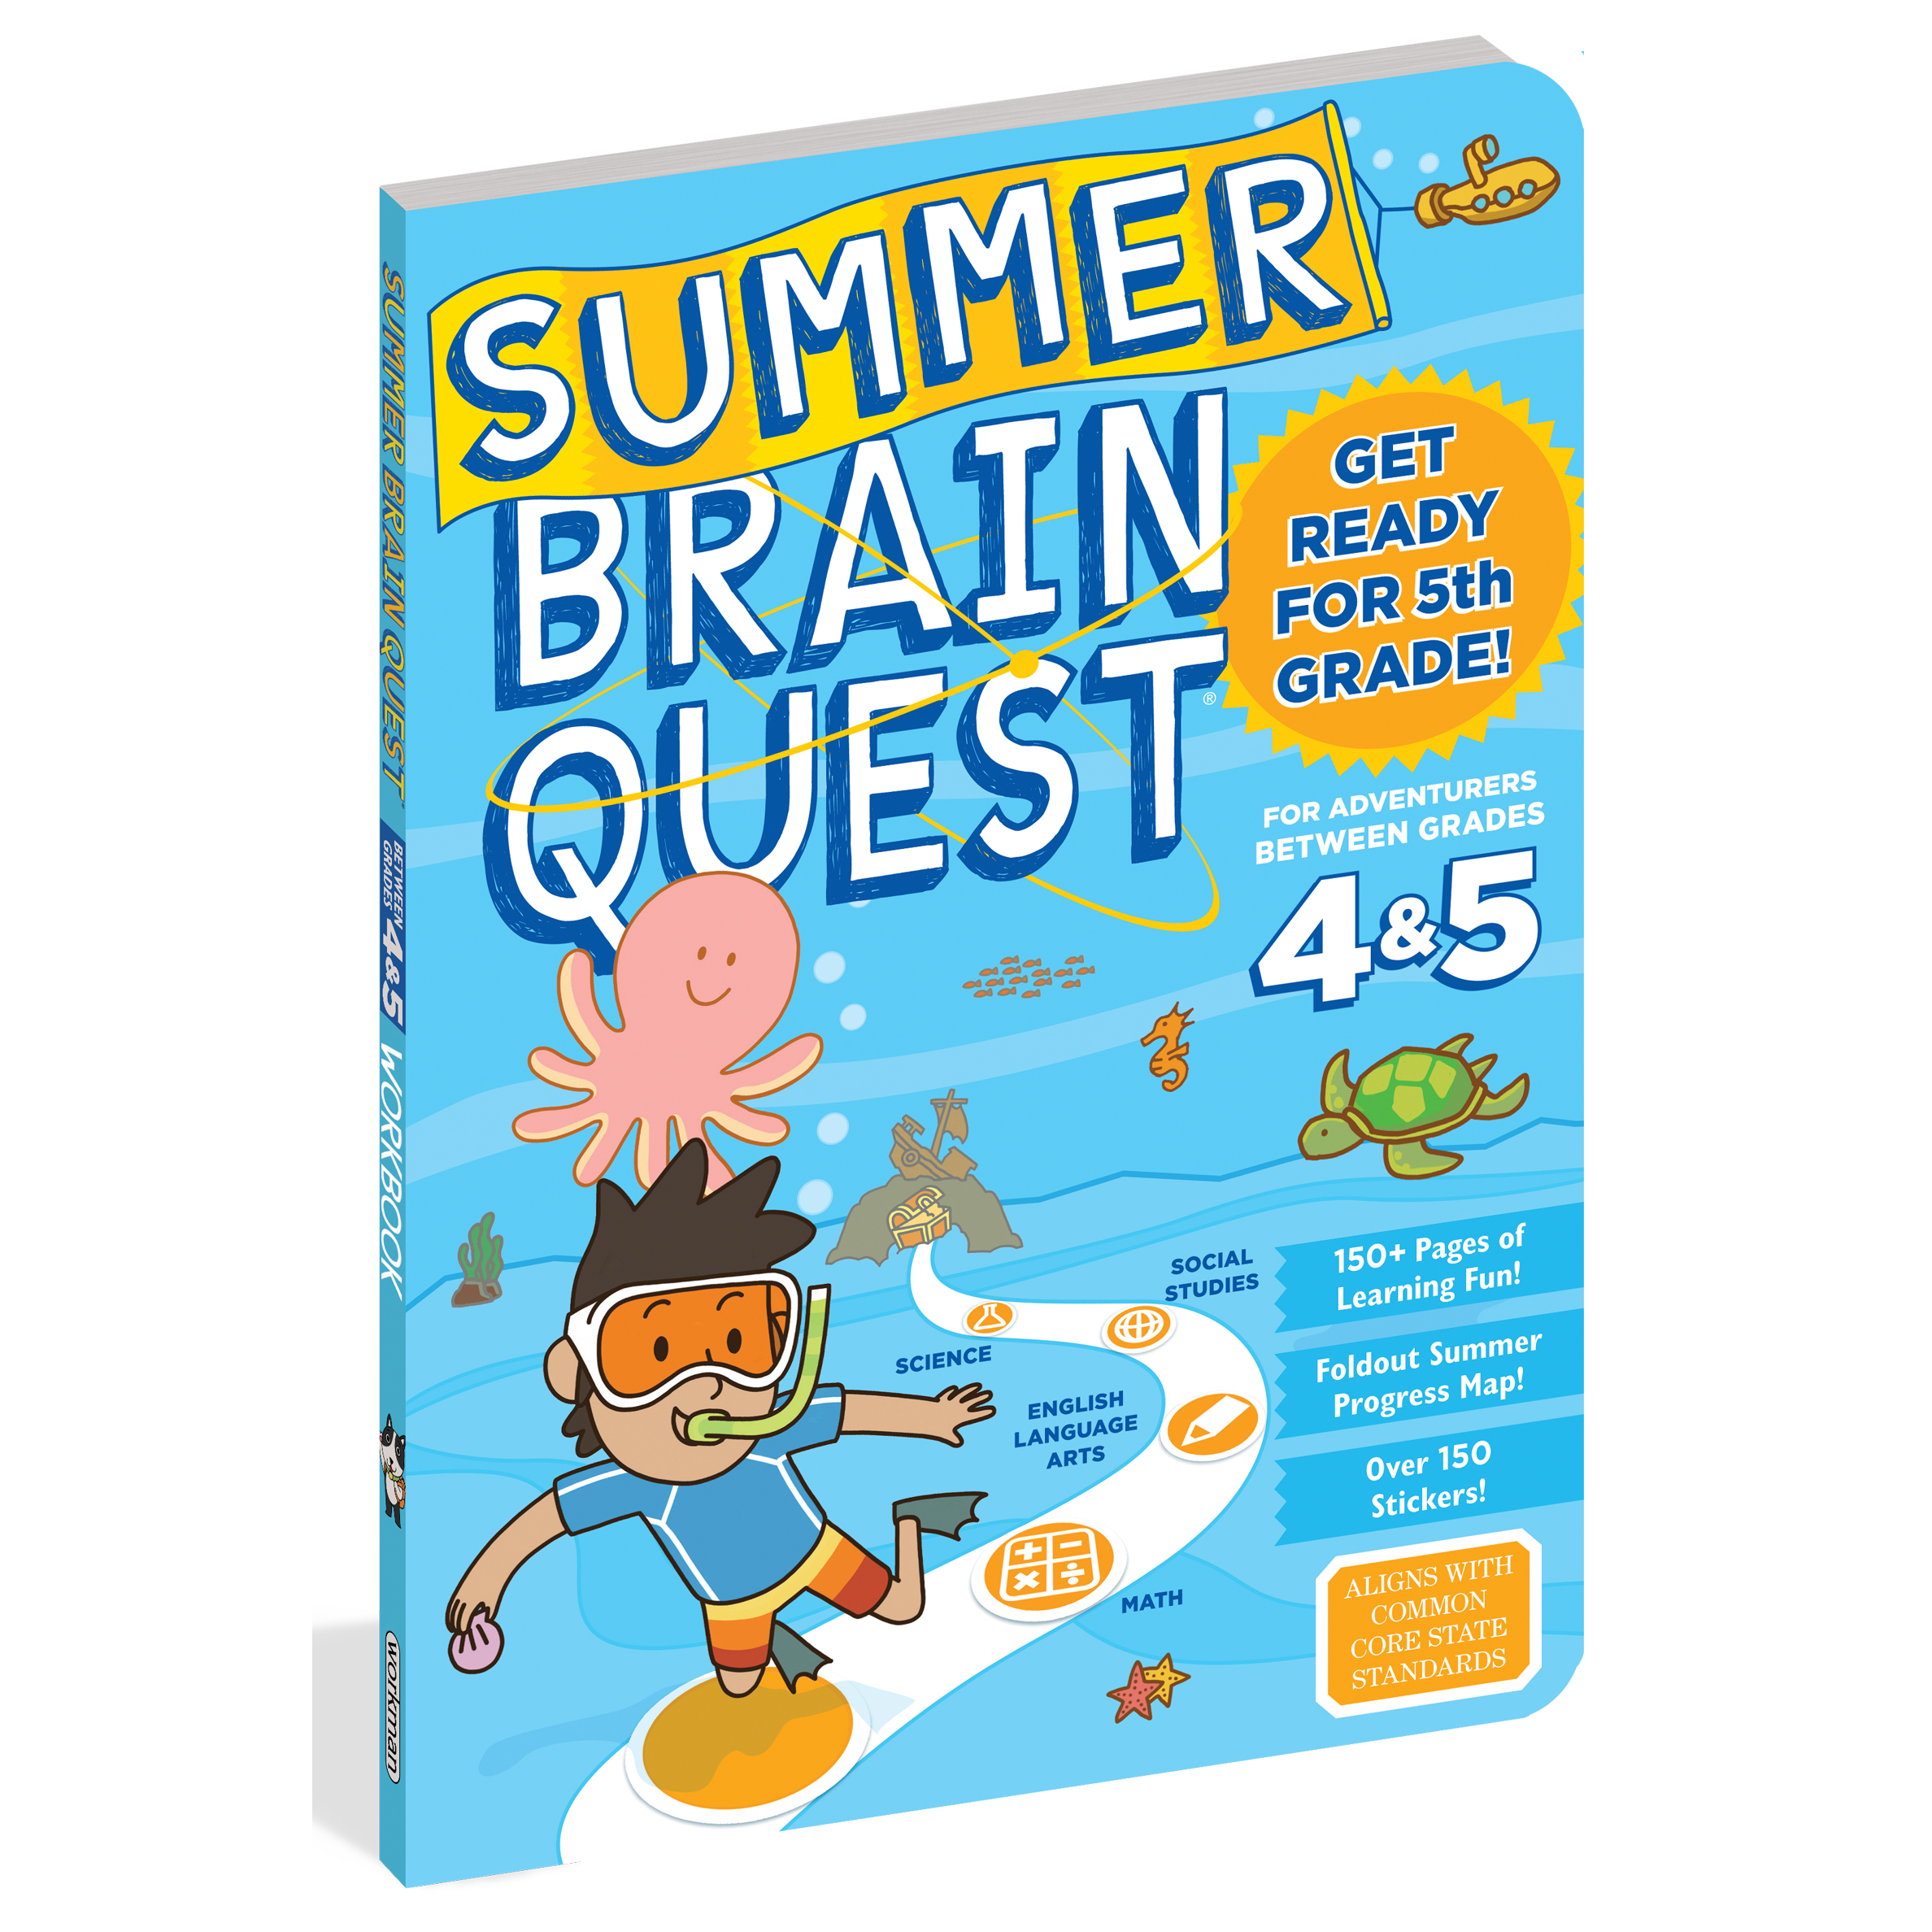 Summer Brain Quest Get ready for 5th Grade! 1